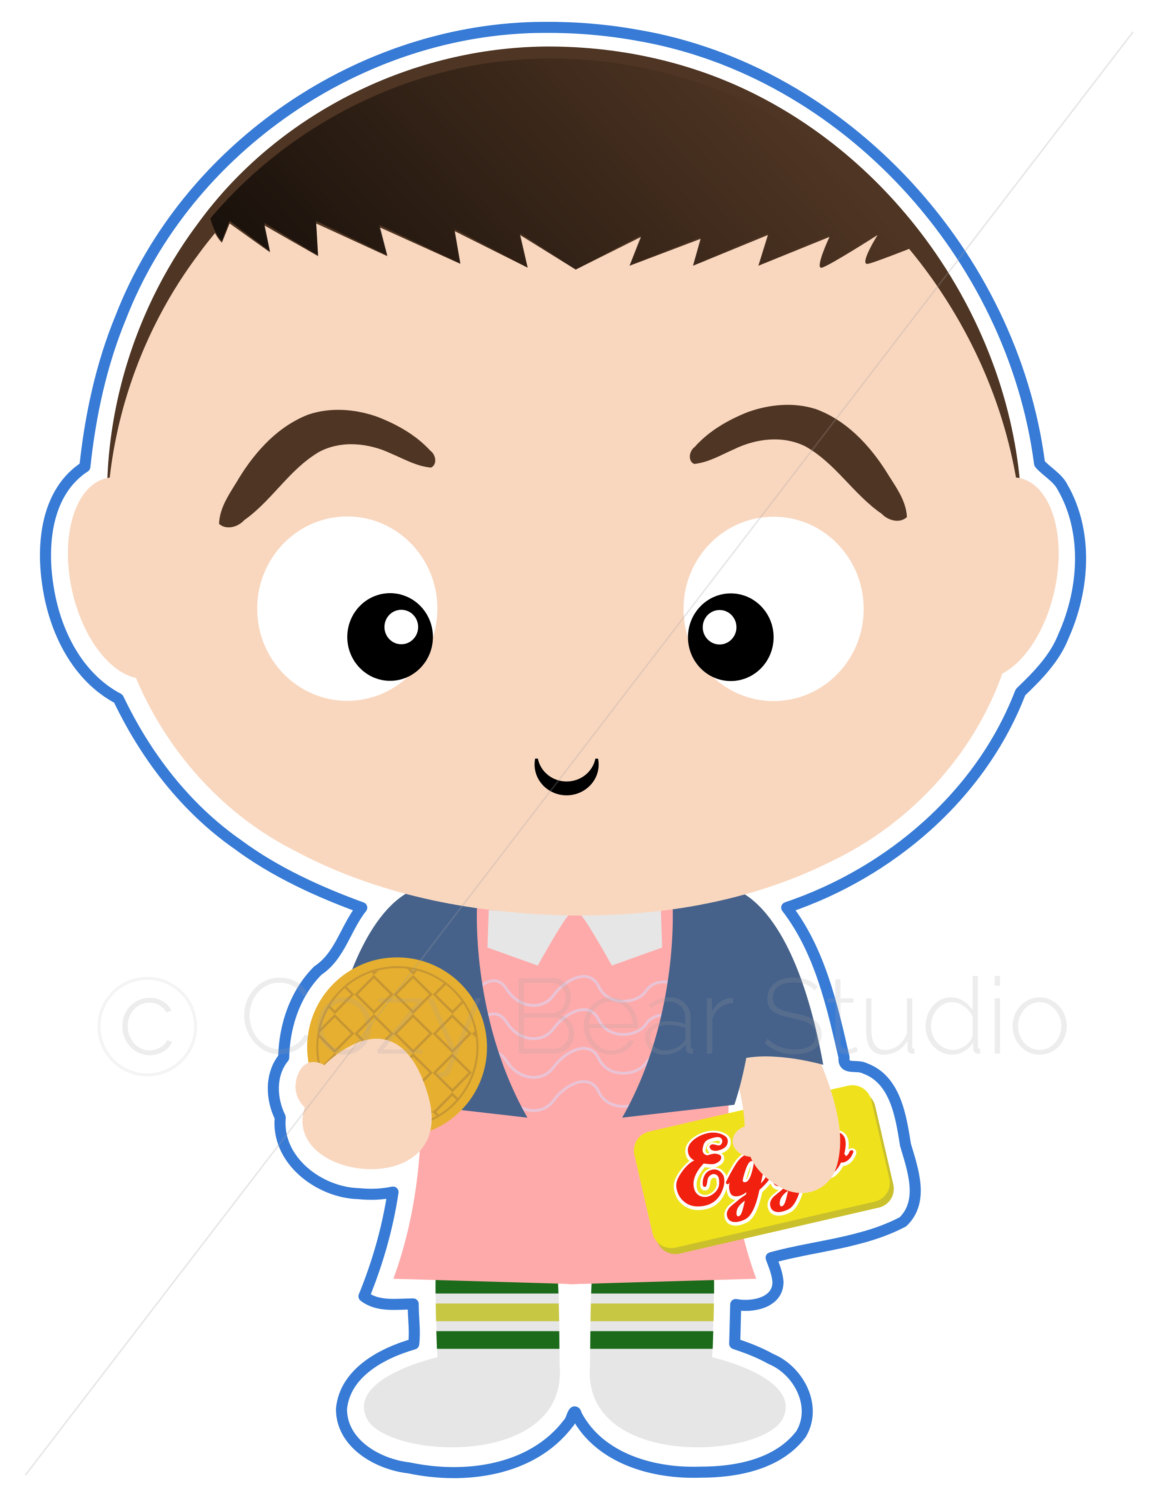 Stranger Things Clipart Eleven Cute Funko Pop Millie Bobby.